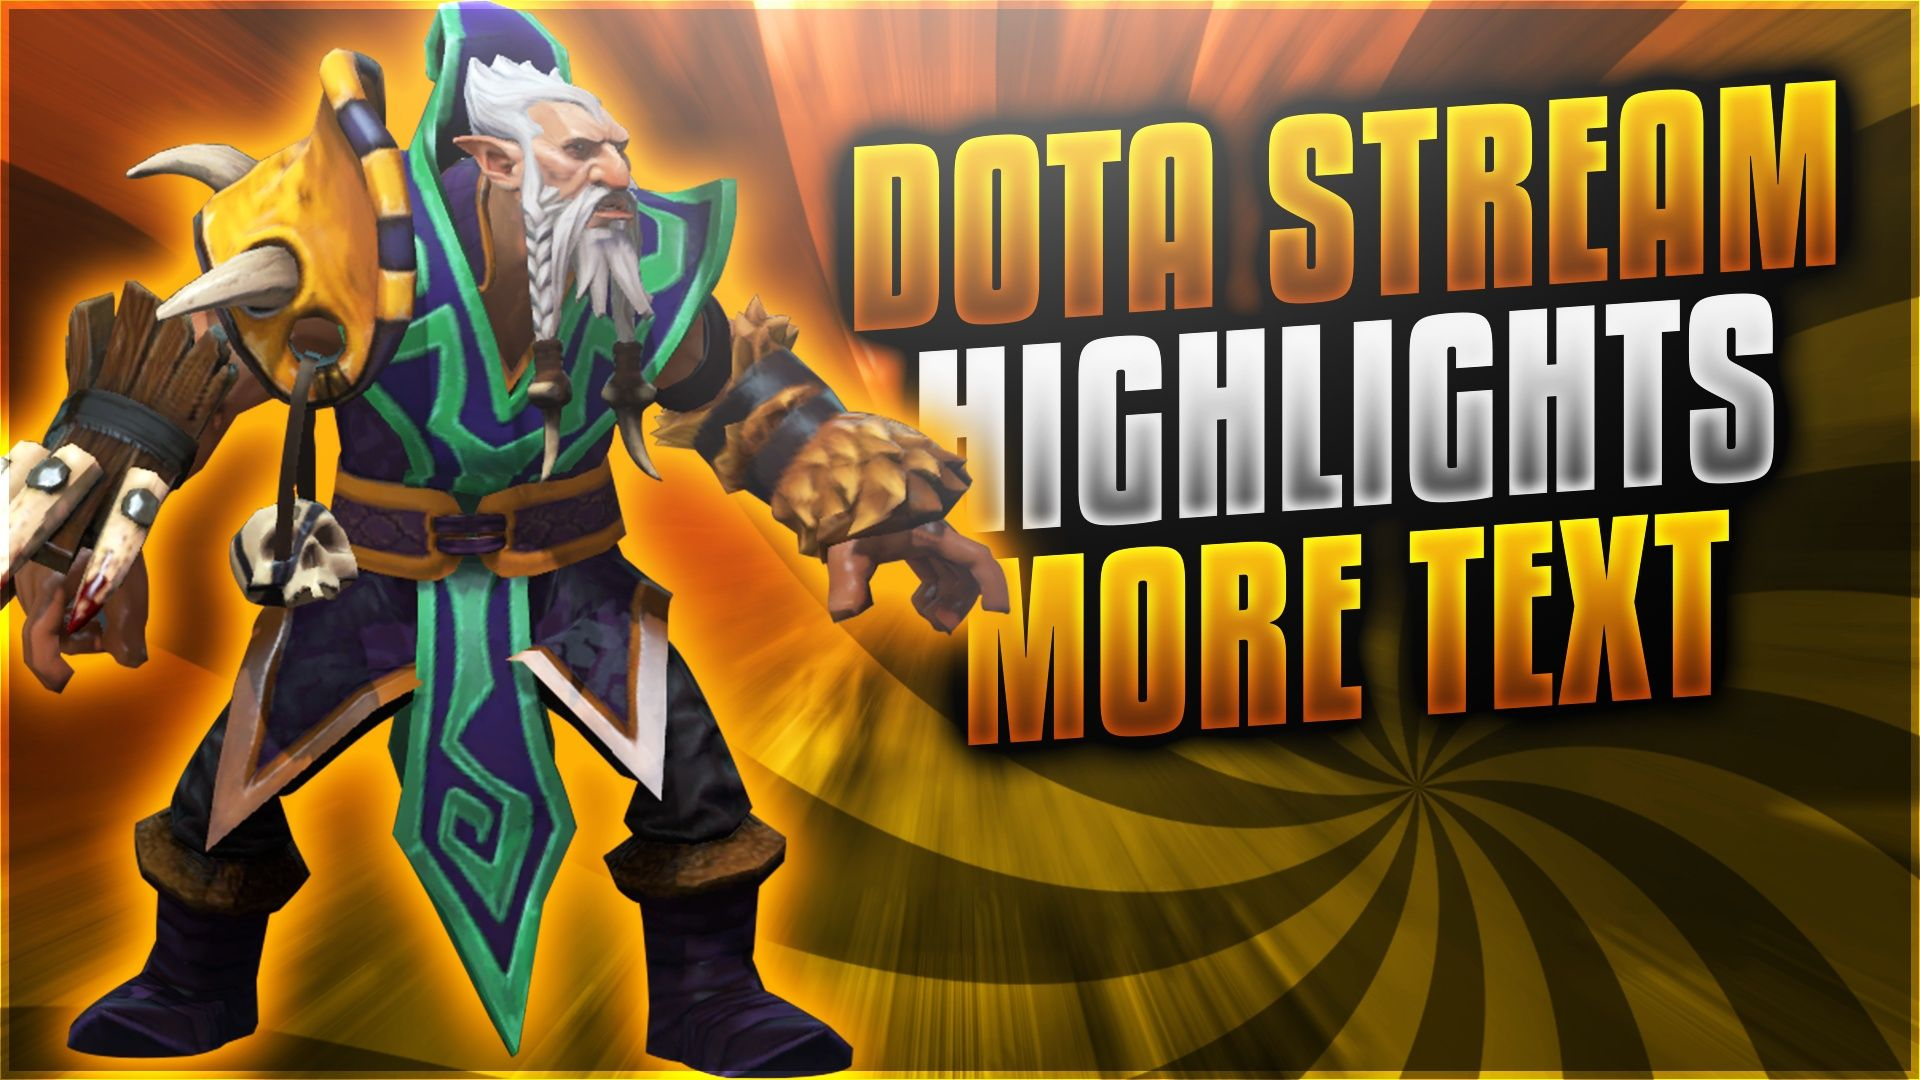 Dota 2 Thumbnail template for your YouTube videos. | Template ...